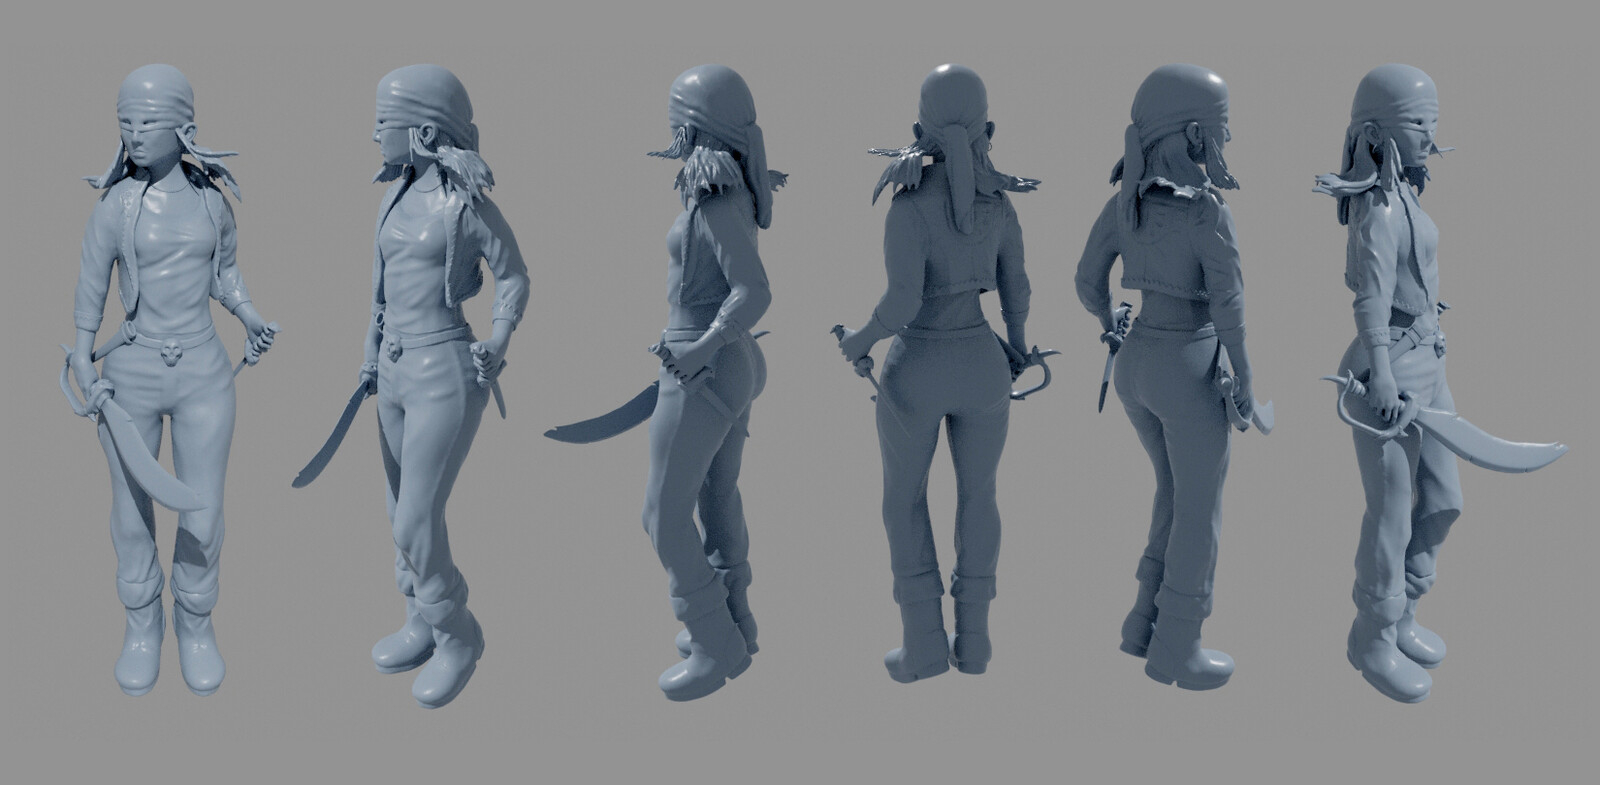 4kdesignstudio, Pirate, girl, character, 3d print, modeling, pose, sword, knife,